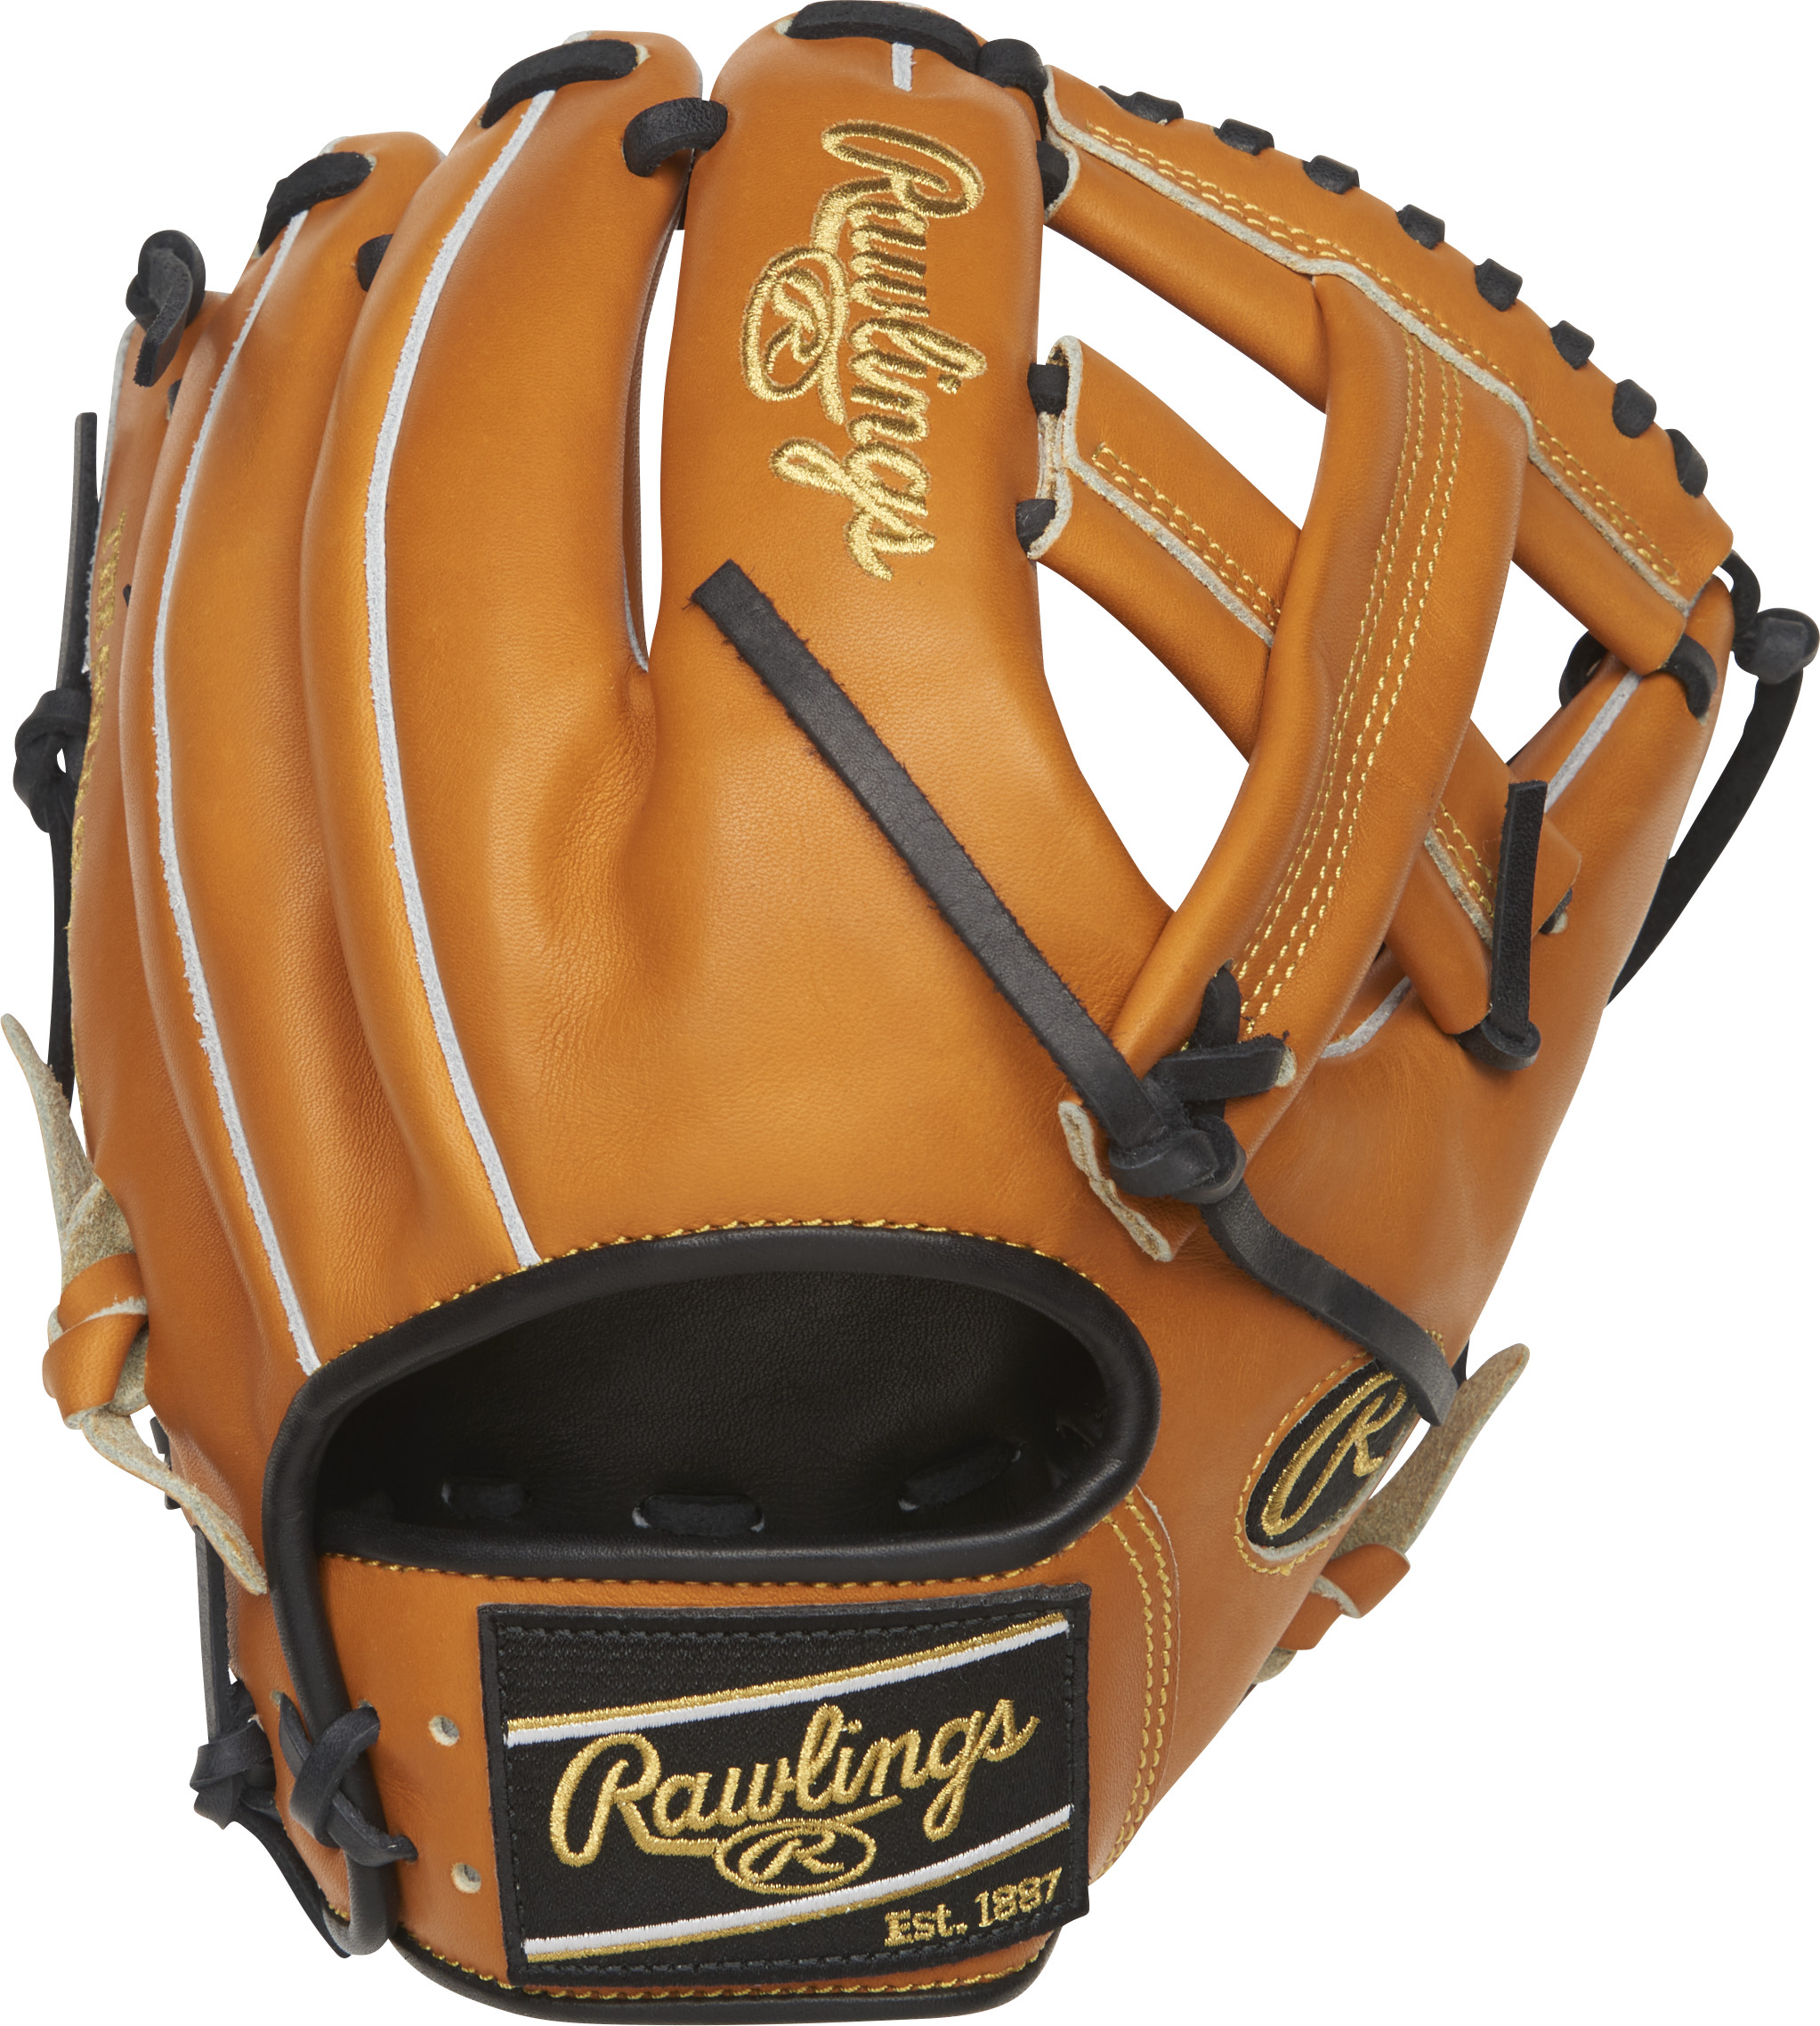 http://www.bestbatdeals.com/images/gloves/rawlings/PRO204-20T-2.jpg